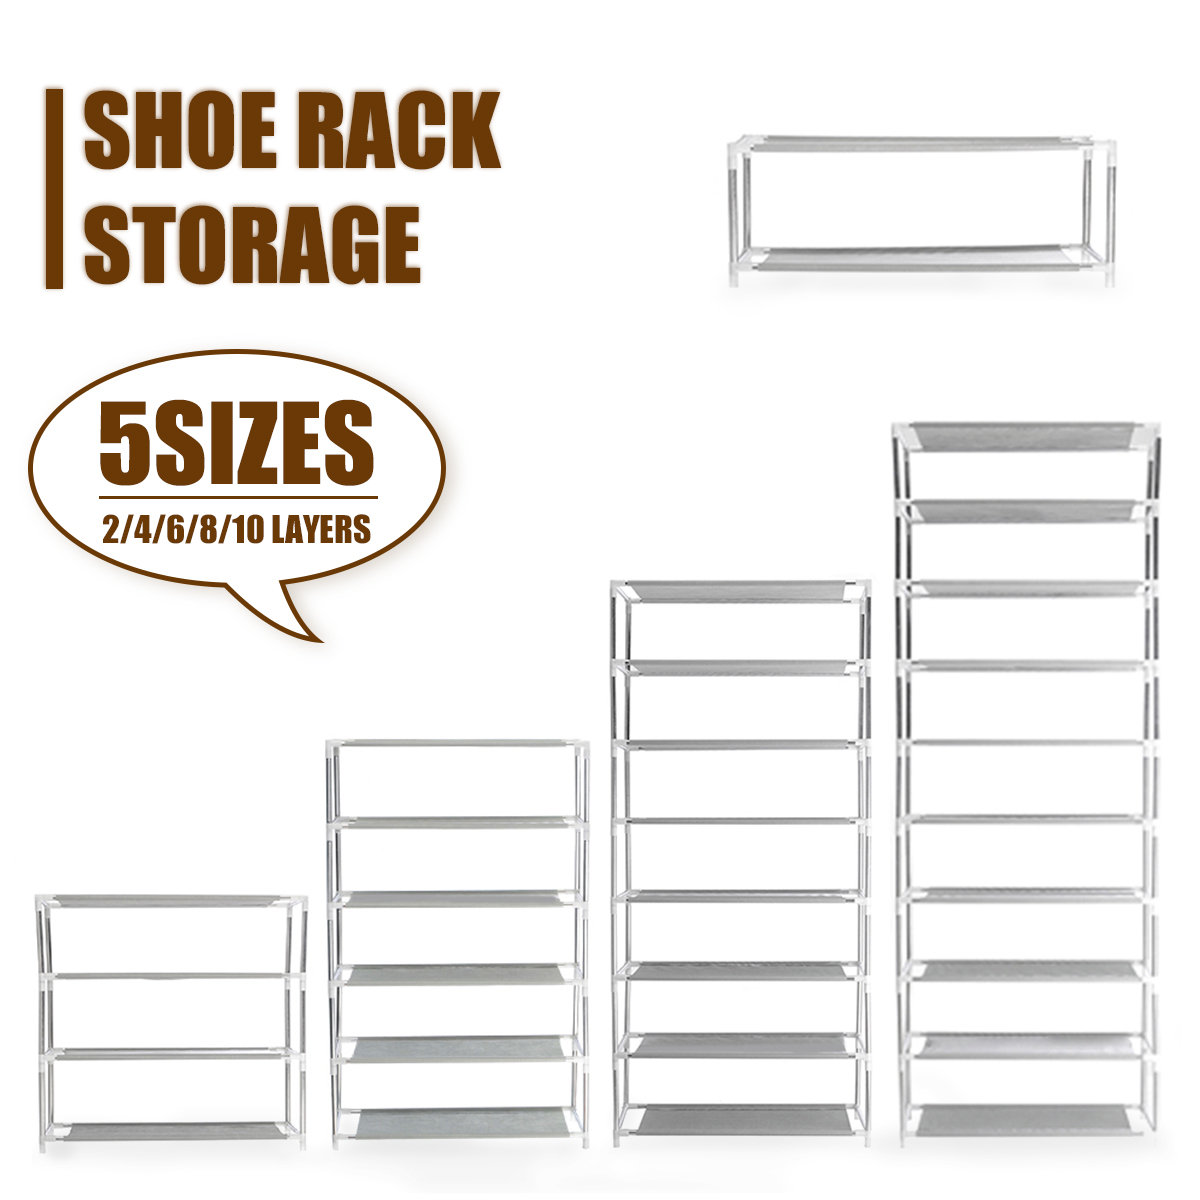 Multi Layer Tier Optional Metal Shoe Rack Storage Organizer Stand Shelf Holder 2/4/6/8/10 Tier Portable Shoes Display Storage